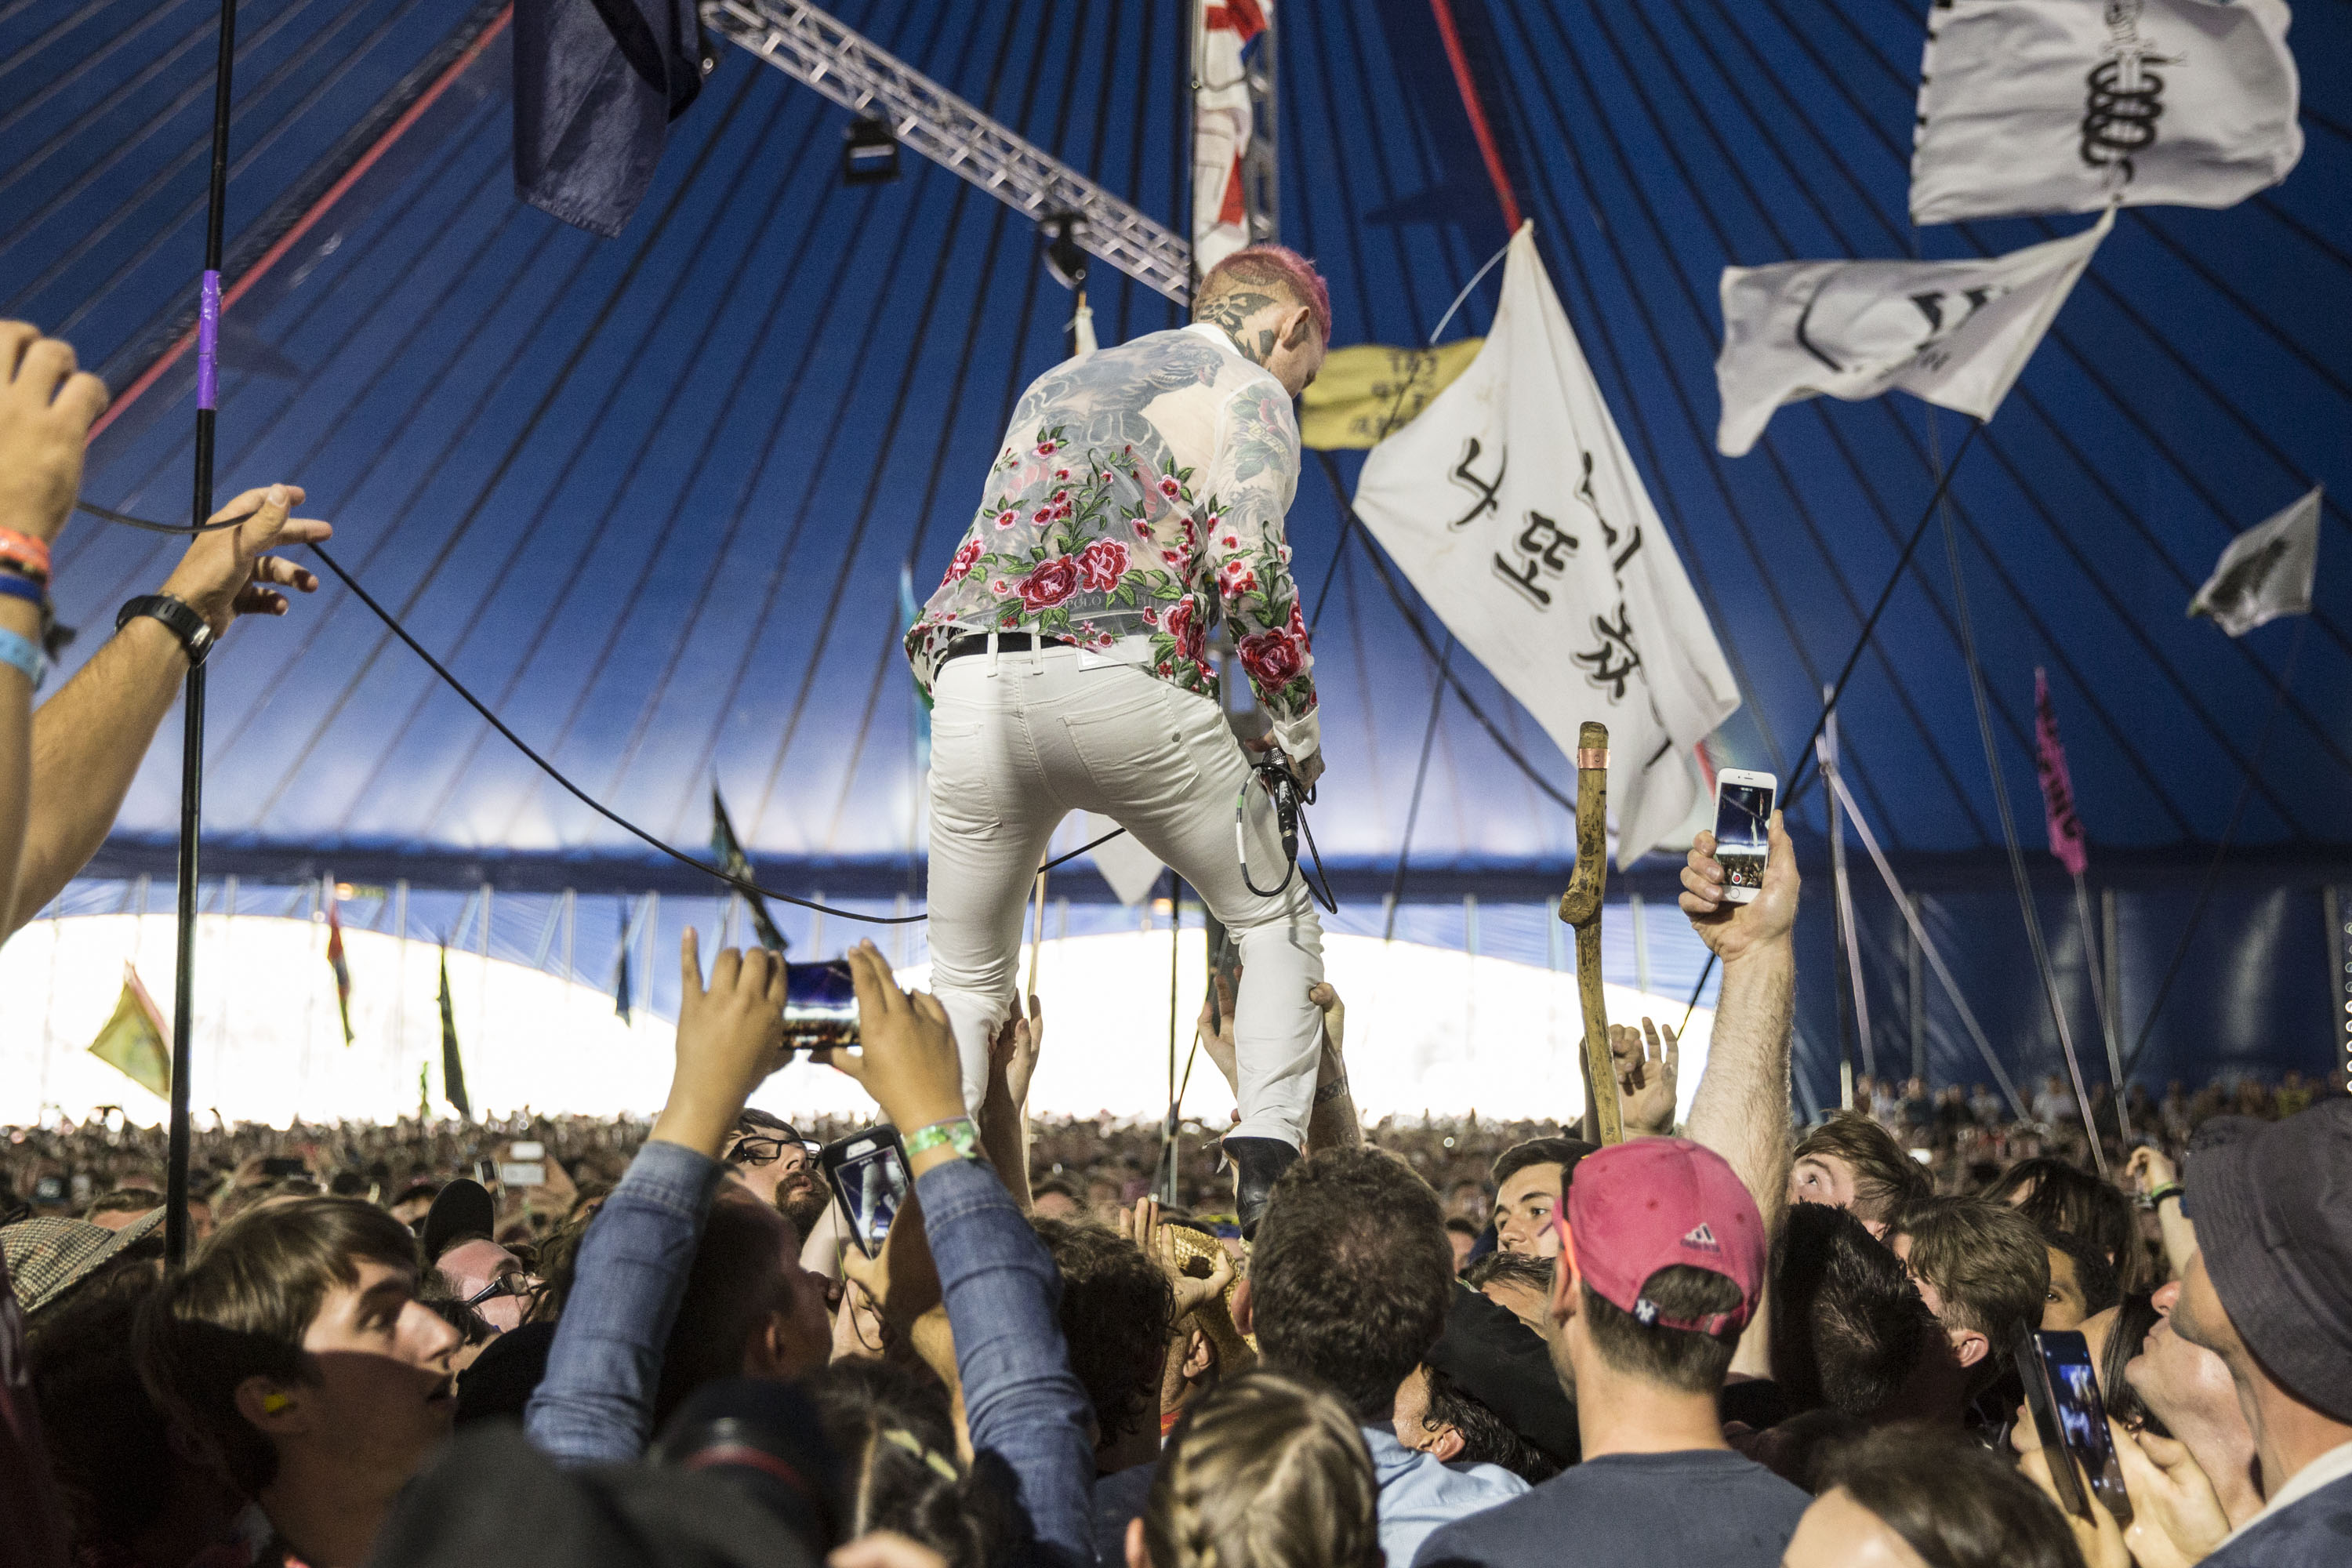 Frank Carter & The Rattlesnakes take Glastonbury 2017 out of its comfort zone